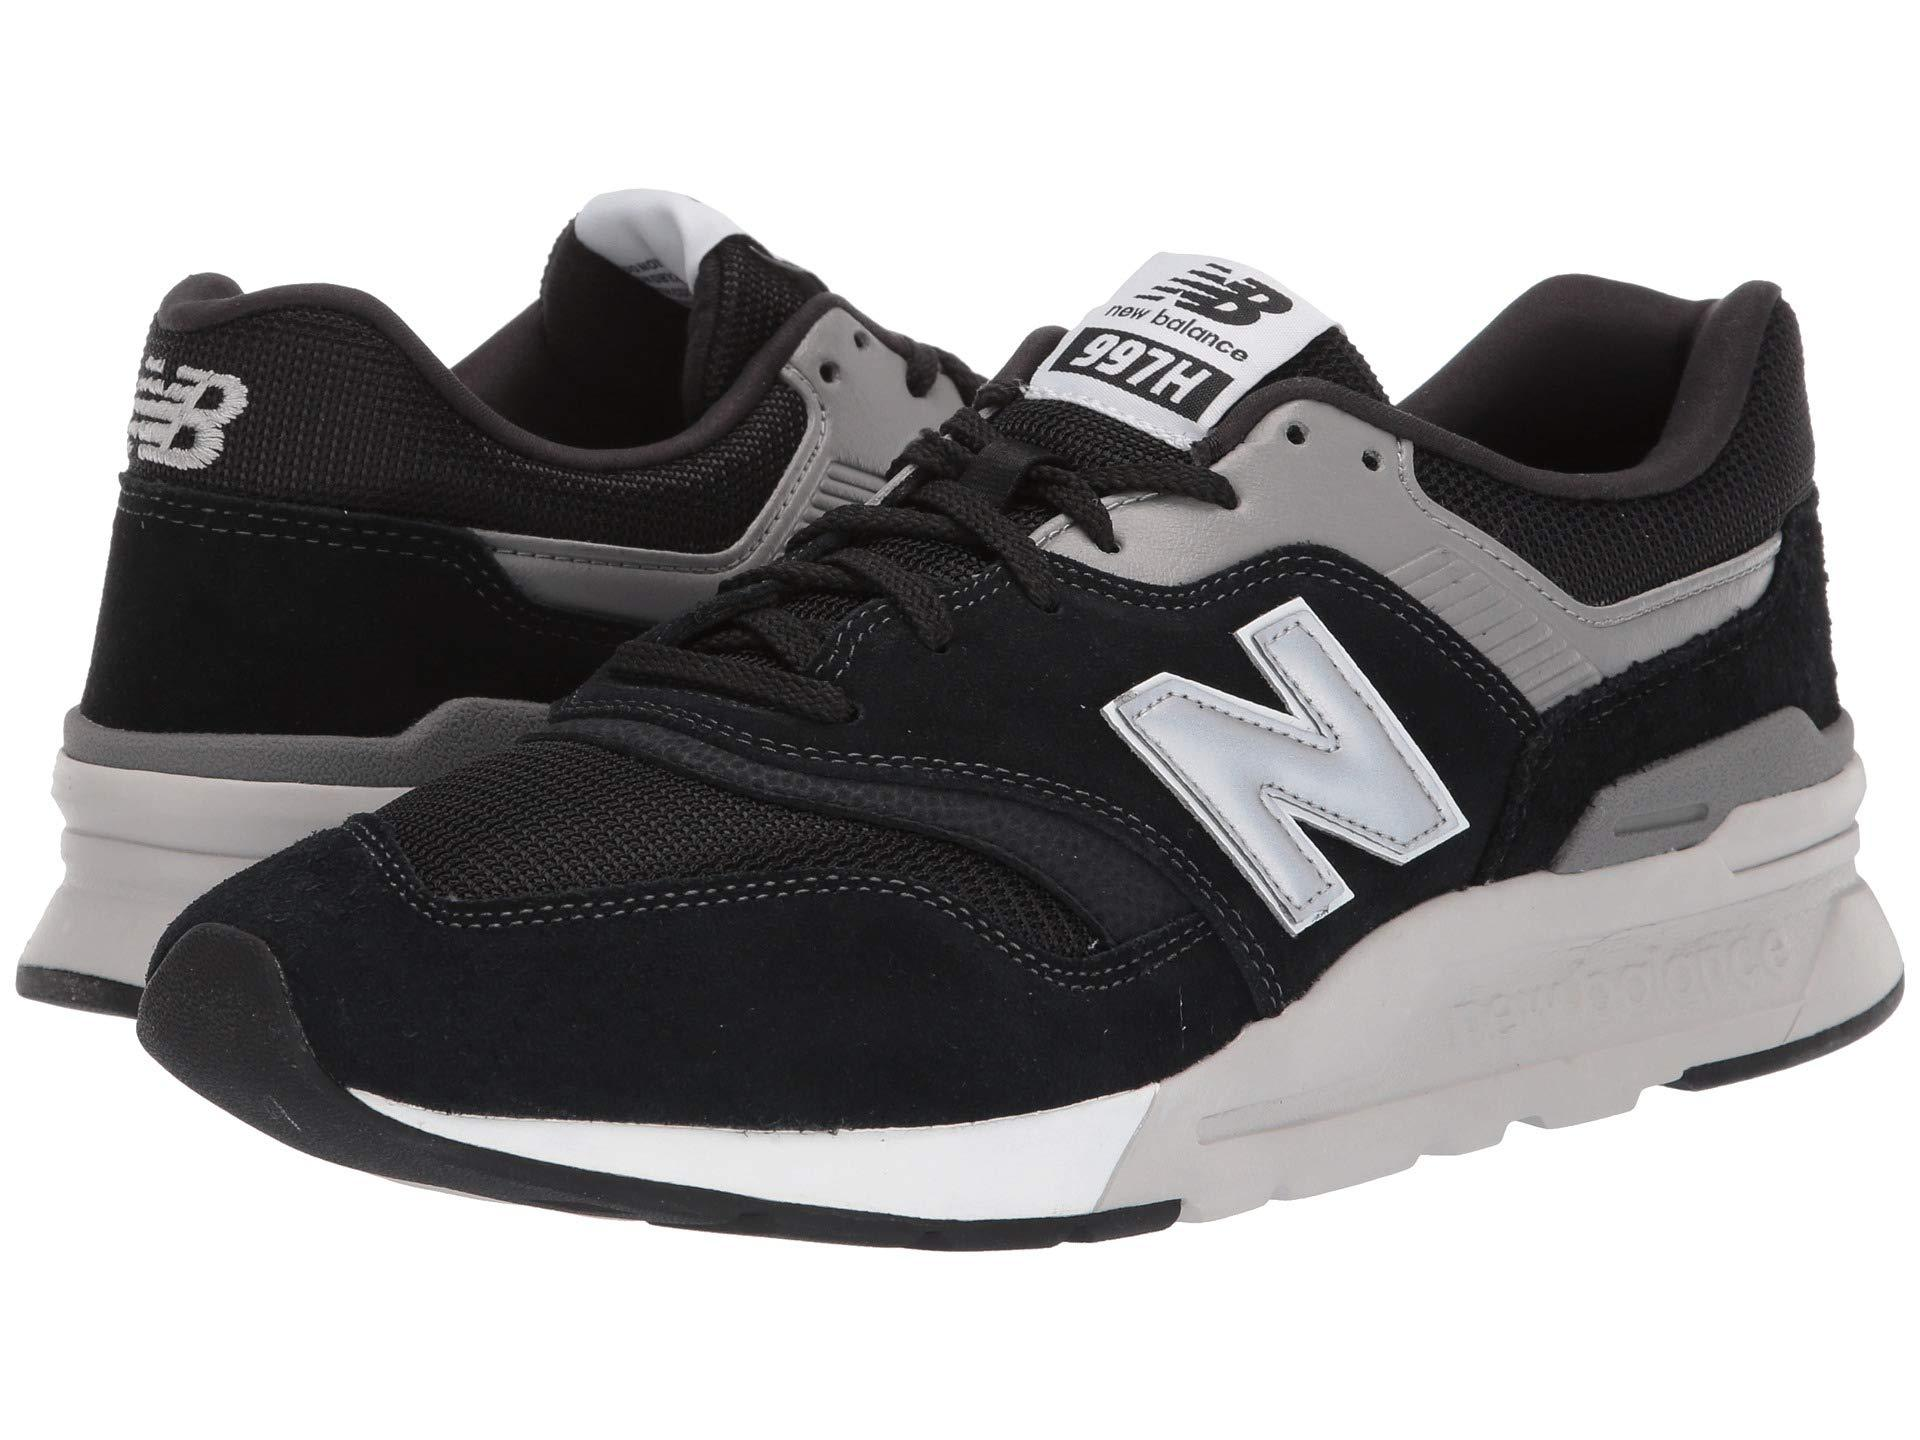 the best attitude cd626 39a23 Lyst - New Balance 997hv1-usa (castlerock/peony) Men's Shoes ...